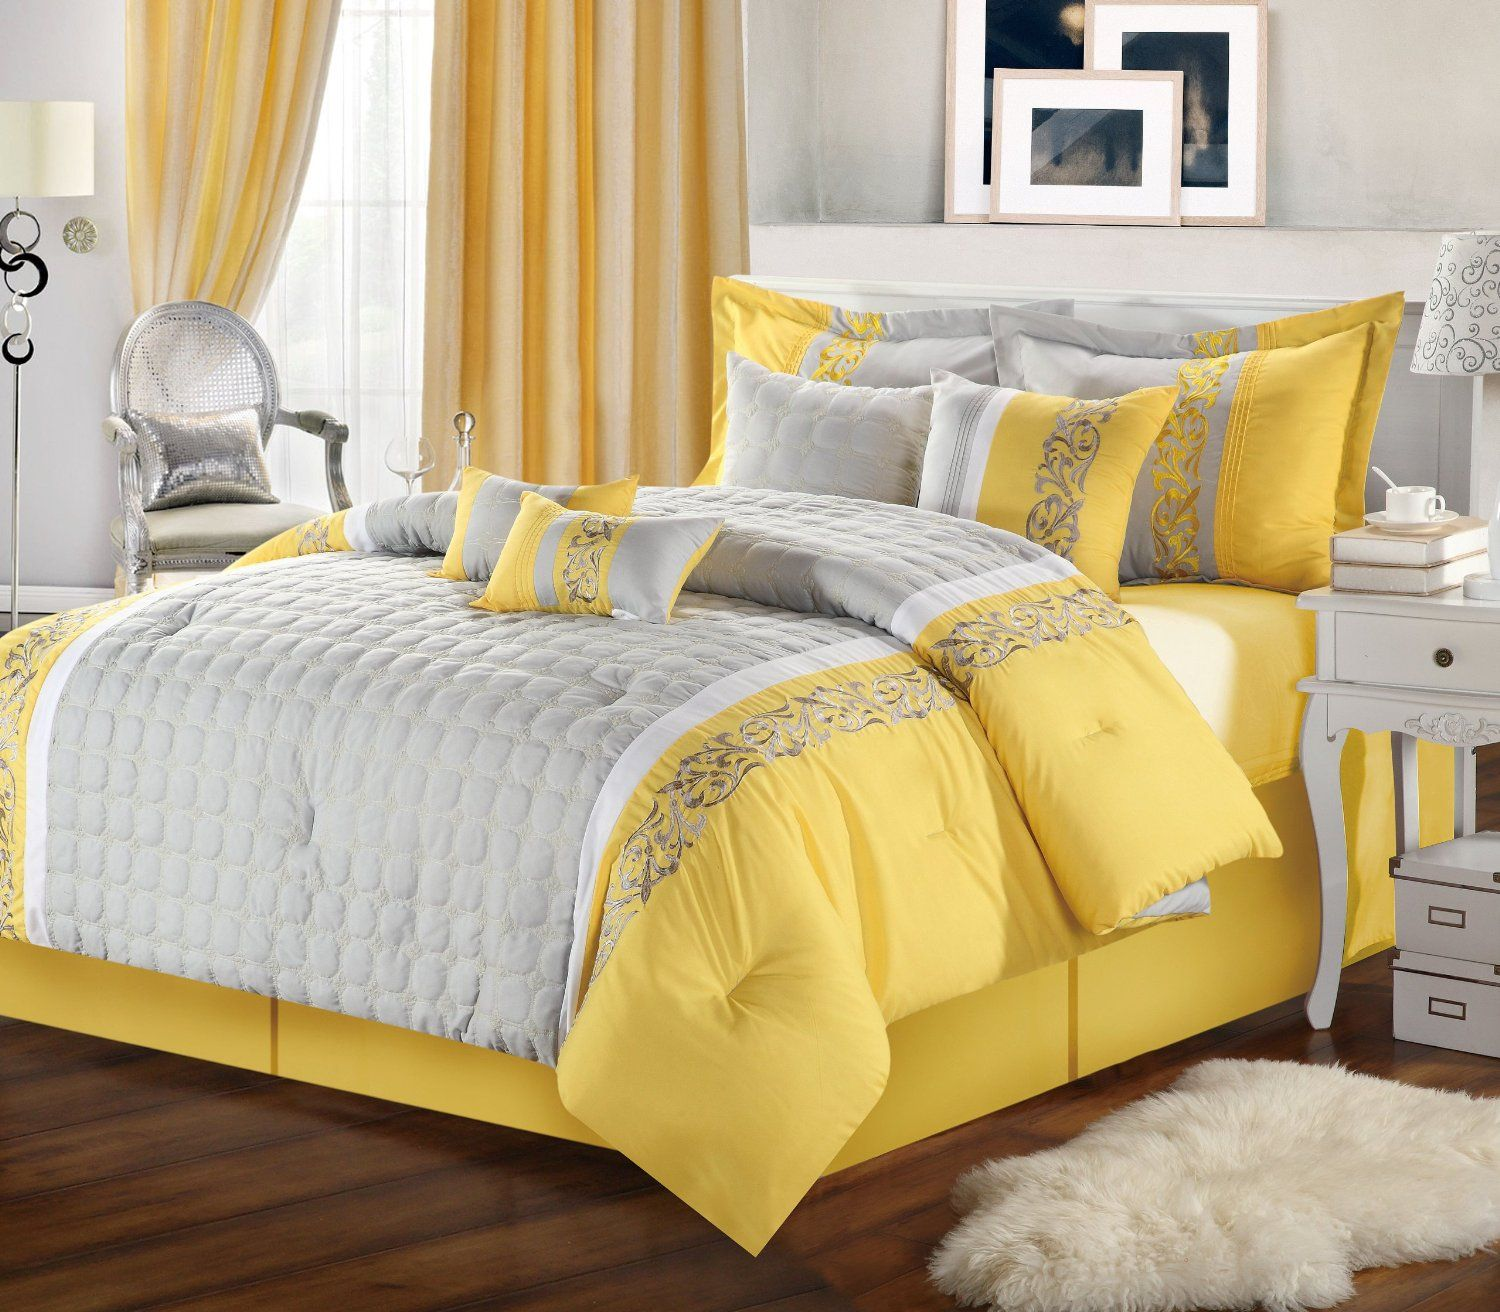 Best Comforter Sets Grey And Yellow Bedding Sets Grey And 400 x 300